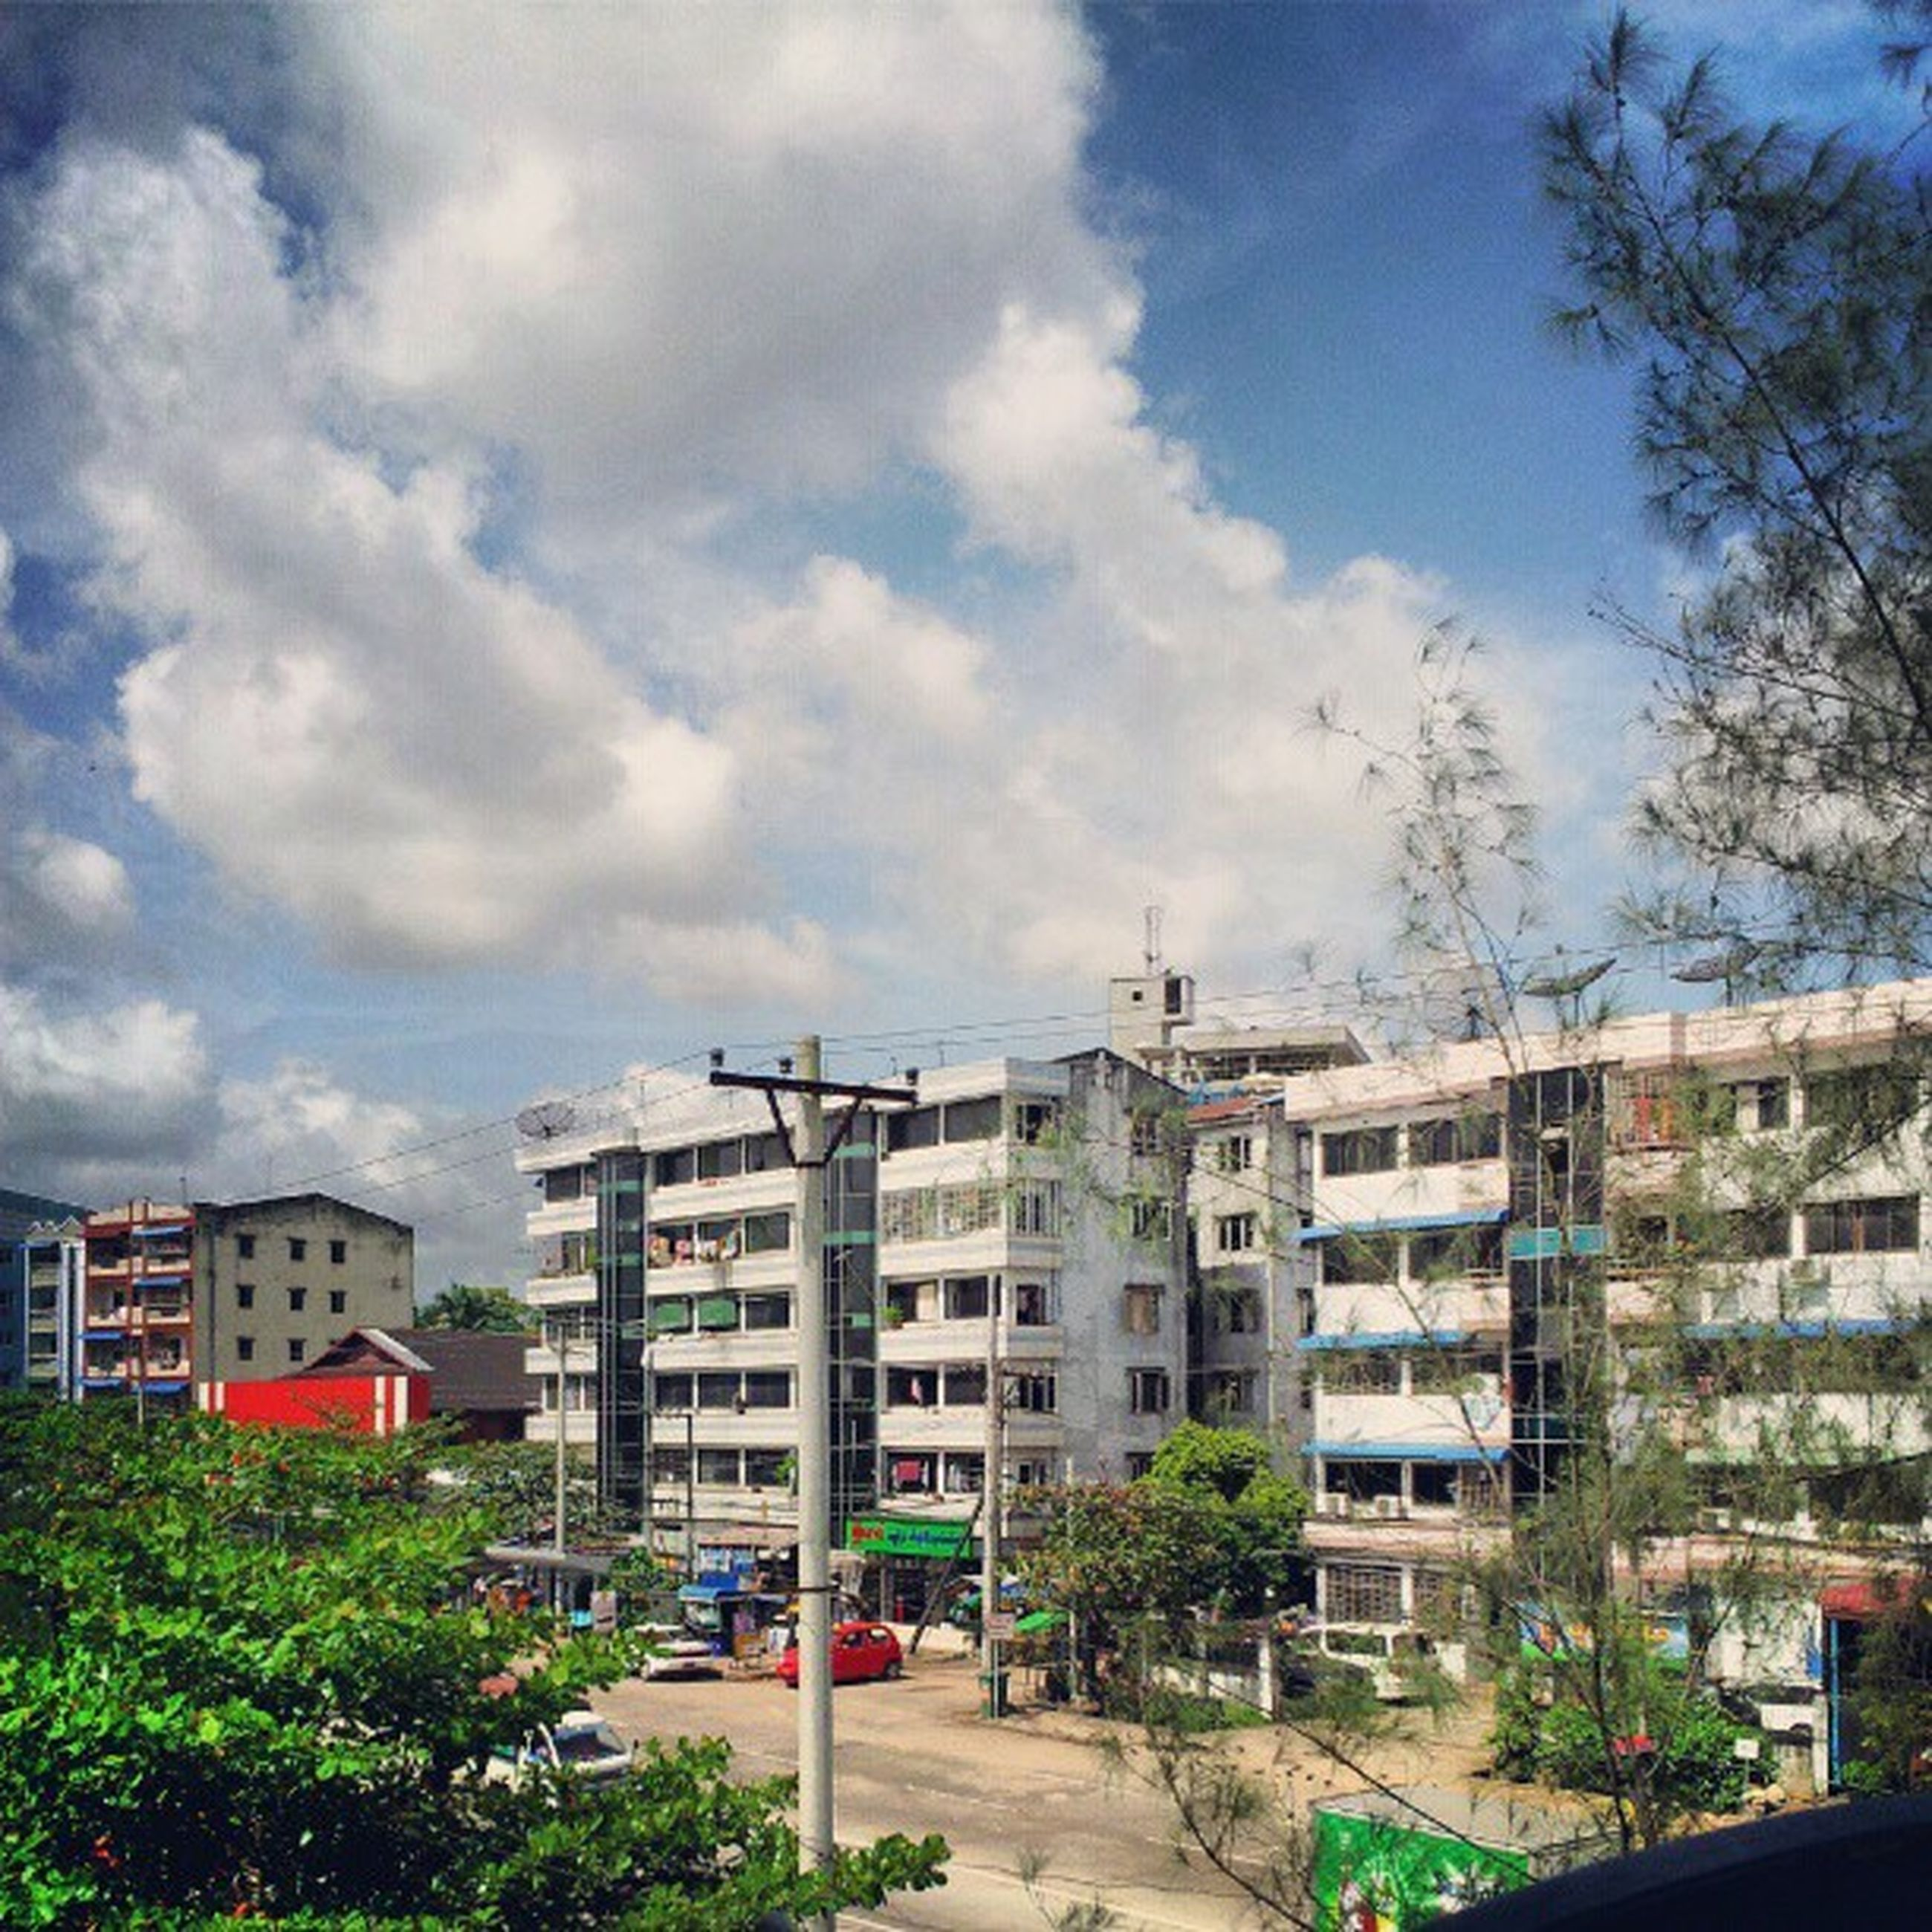 building exterior, architecture, built structure, sky, residential building, residential structure, house, tree, city, building, residential district, window, street, cloud - sky, day, cloud, outdoors, road, town, no people